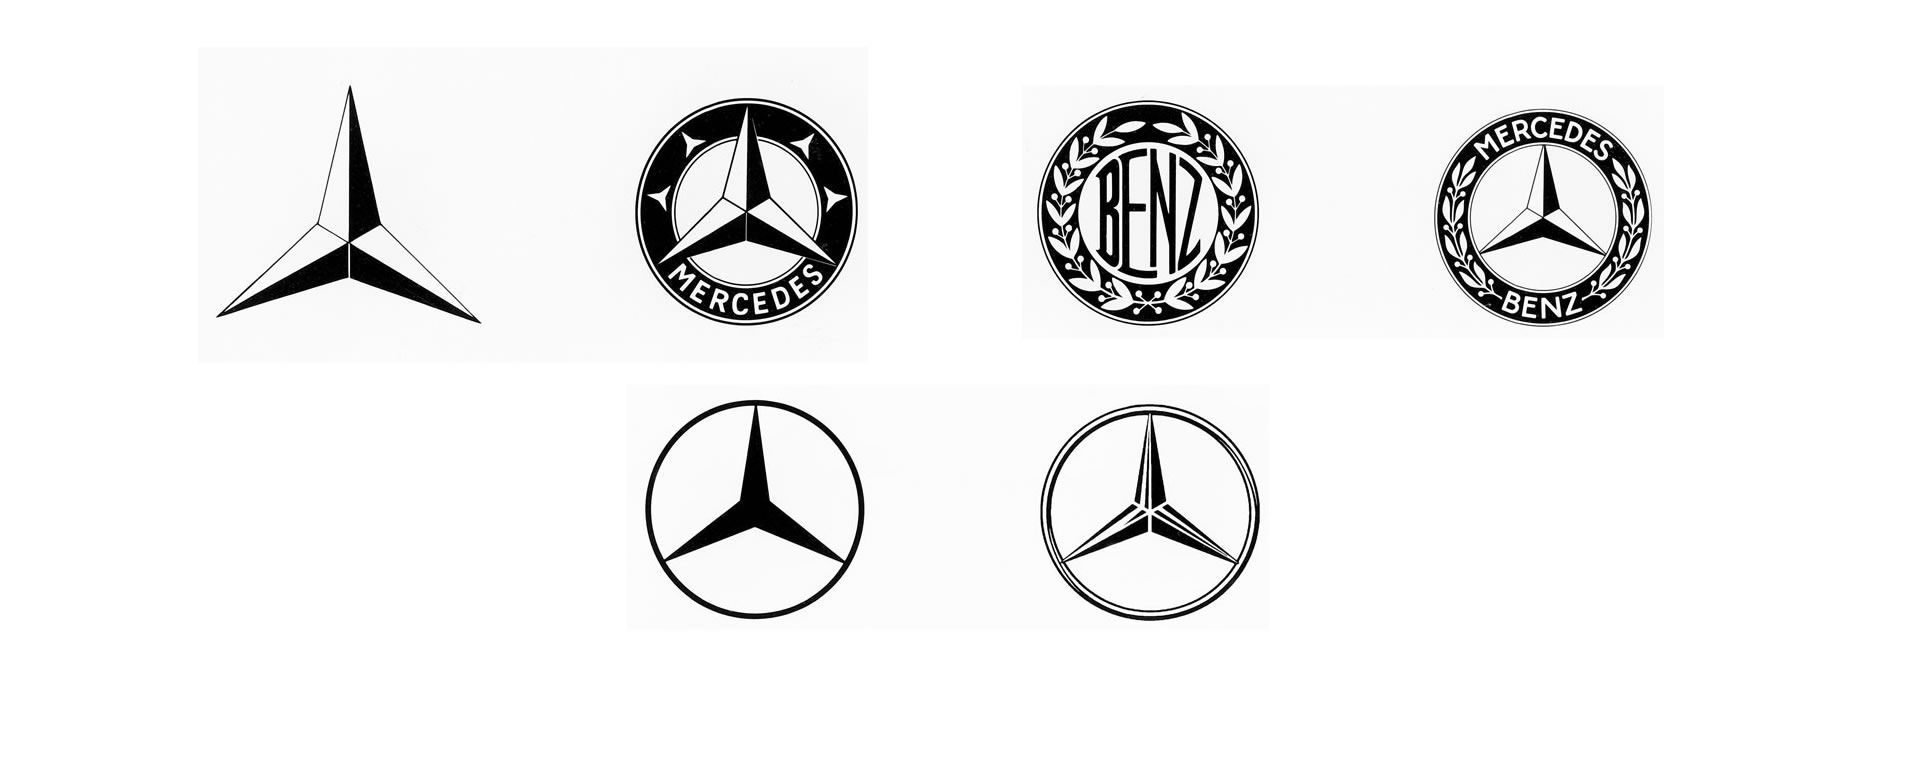 1000 images about history of the mercedes benz brand on pinterest logos grand prix and gottlieb daimler - Mercedes Benz Logo